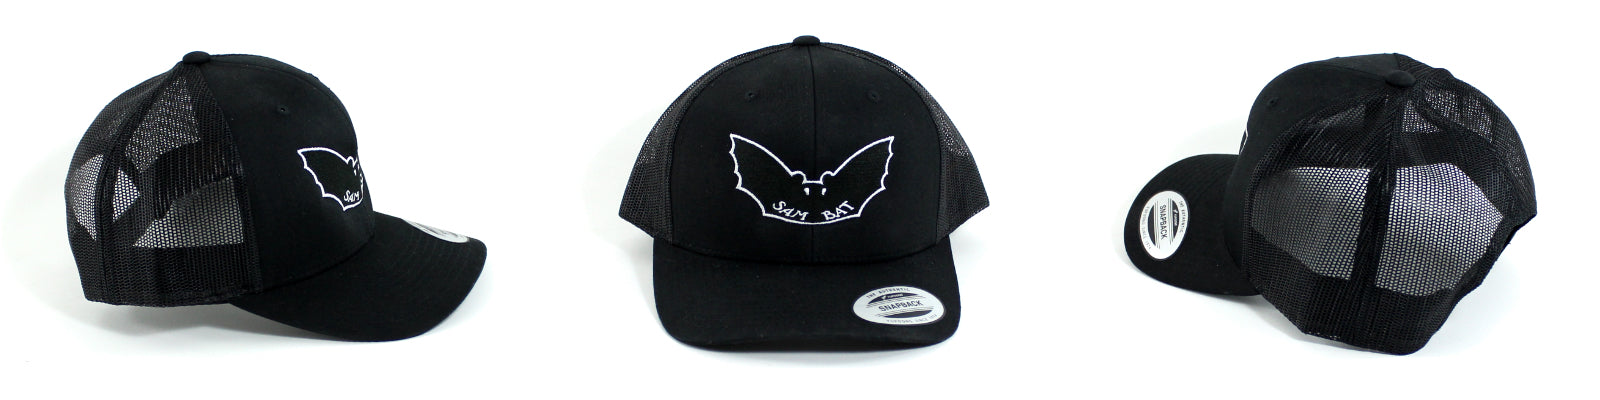 Sam Bat Retro Trucker - All Black